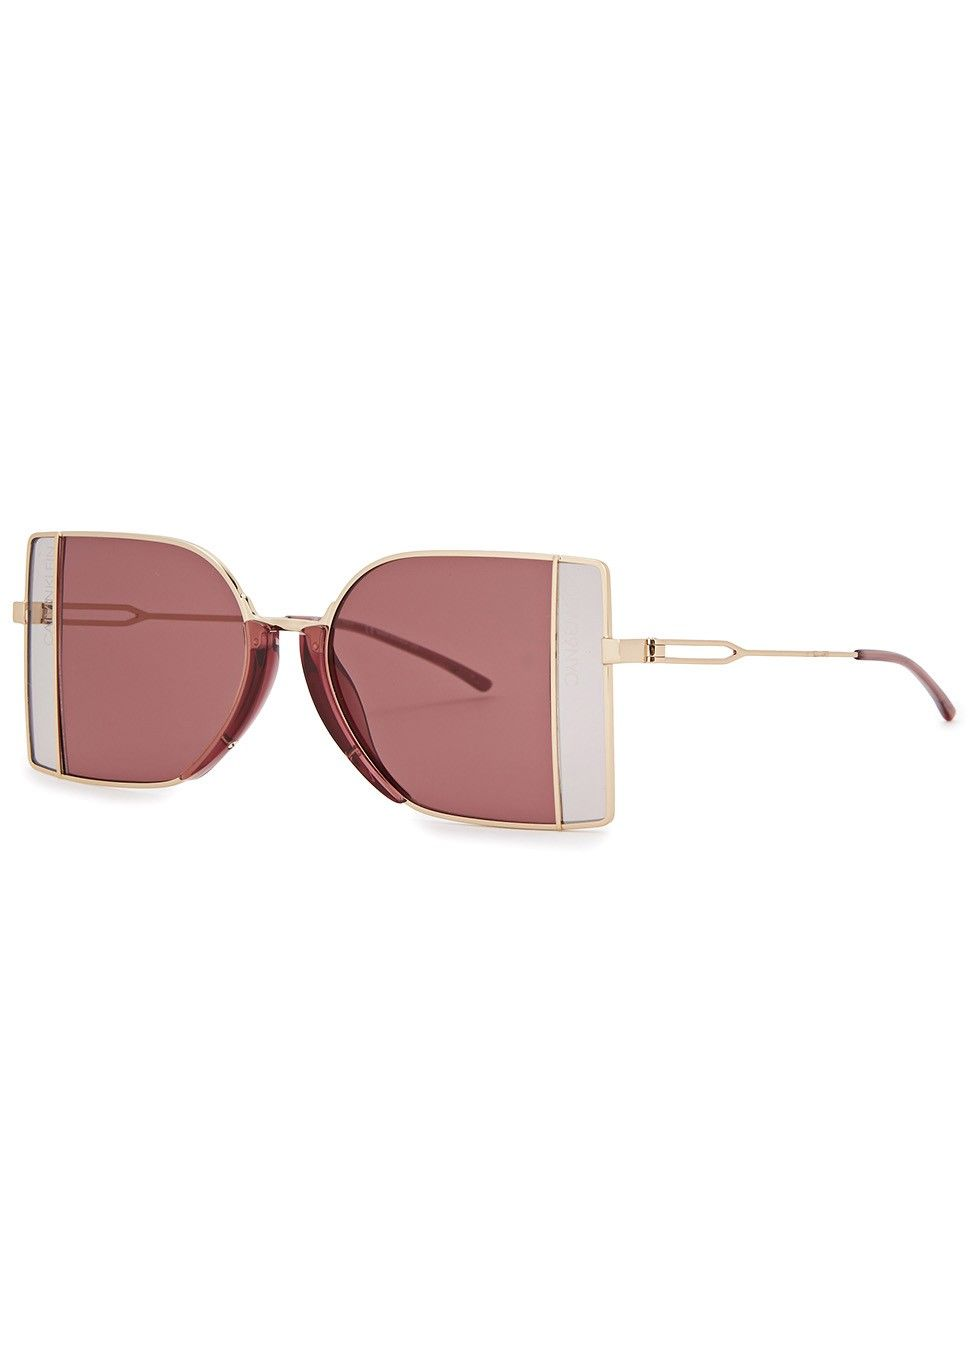 fff5244956fe Calvin Klein gold tone metal sunglasses Designer-stamped grey and dark  purple panelled lenses